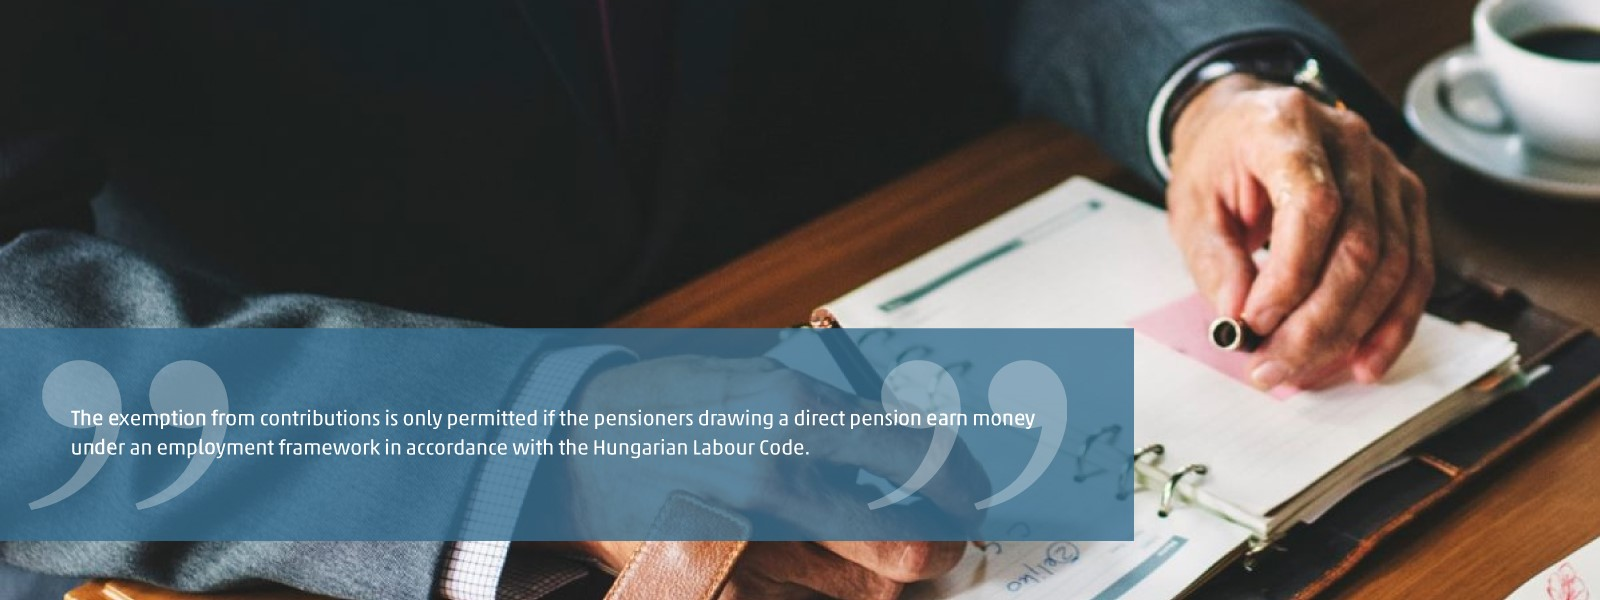 From 2019, employees who are pensioners drawing a direct pension do not have to pay contributions in Hungary